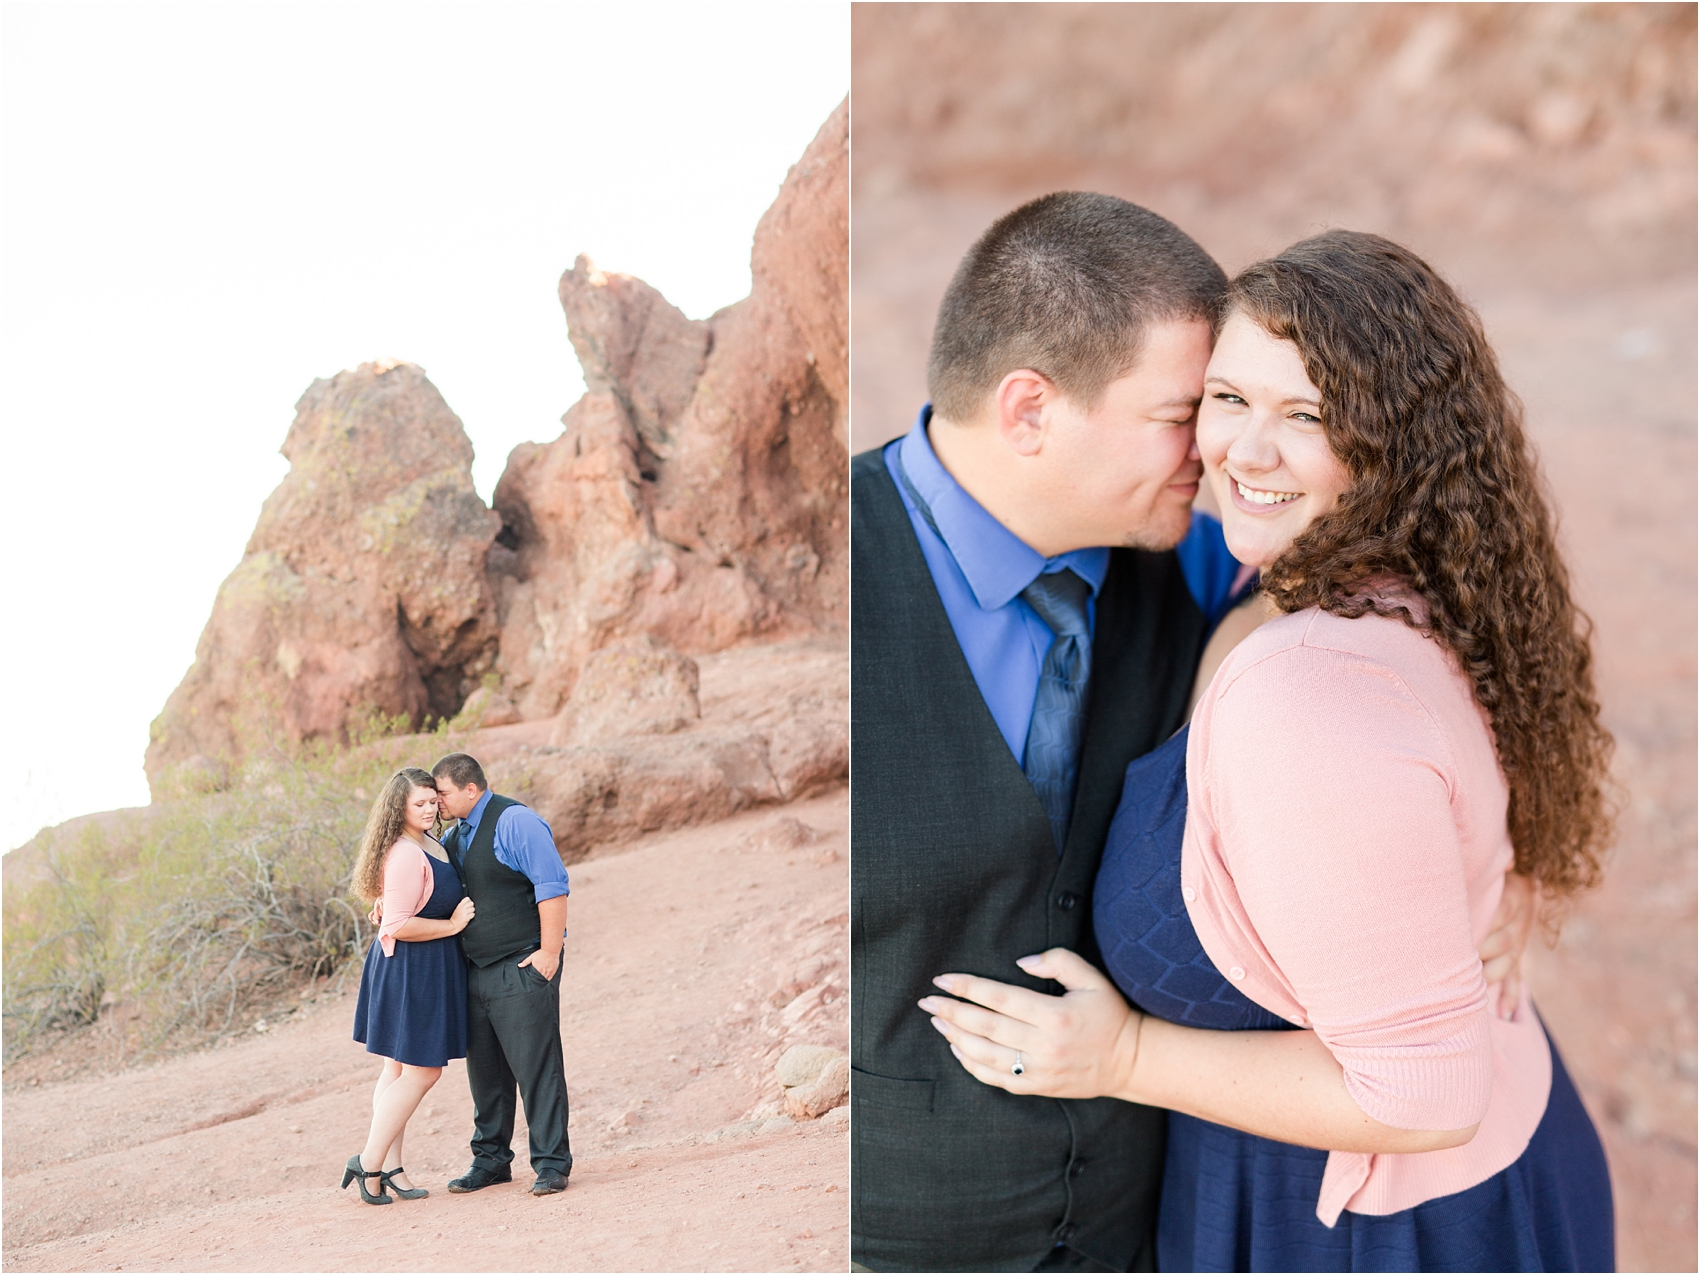 romantic-desert-engagement-photos-in-scottsdale-arizona-courtney-carolyn-photography-by-katelyn-james_0016.jpg